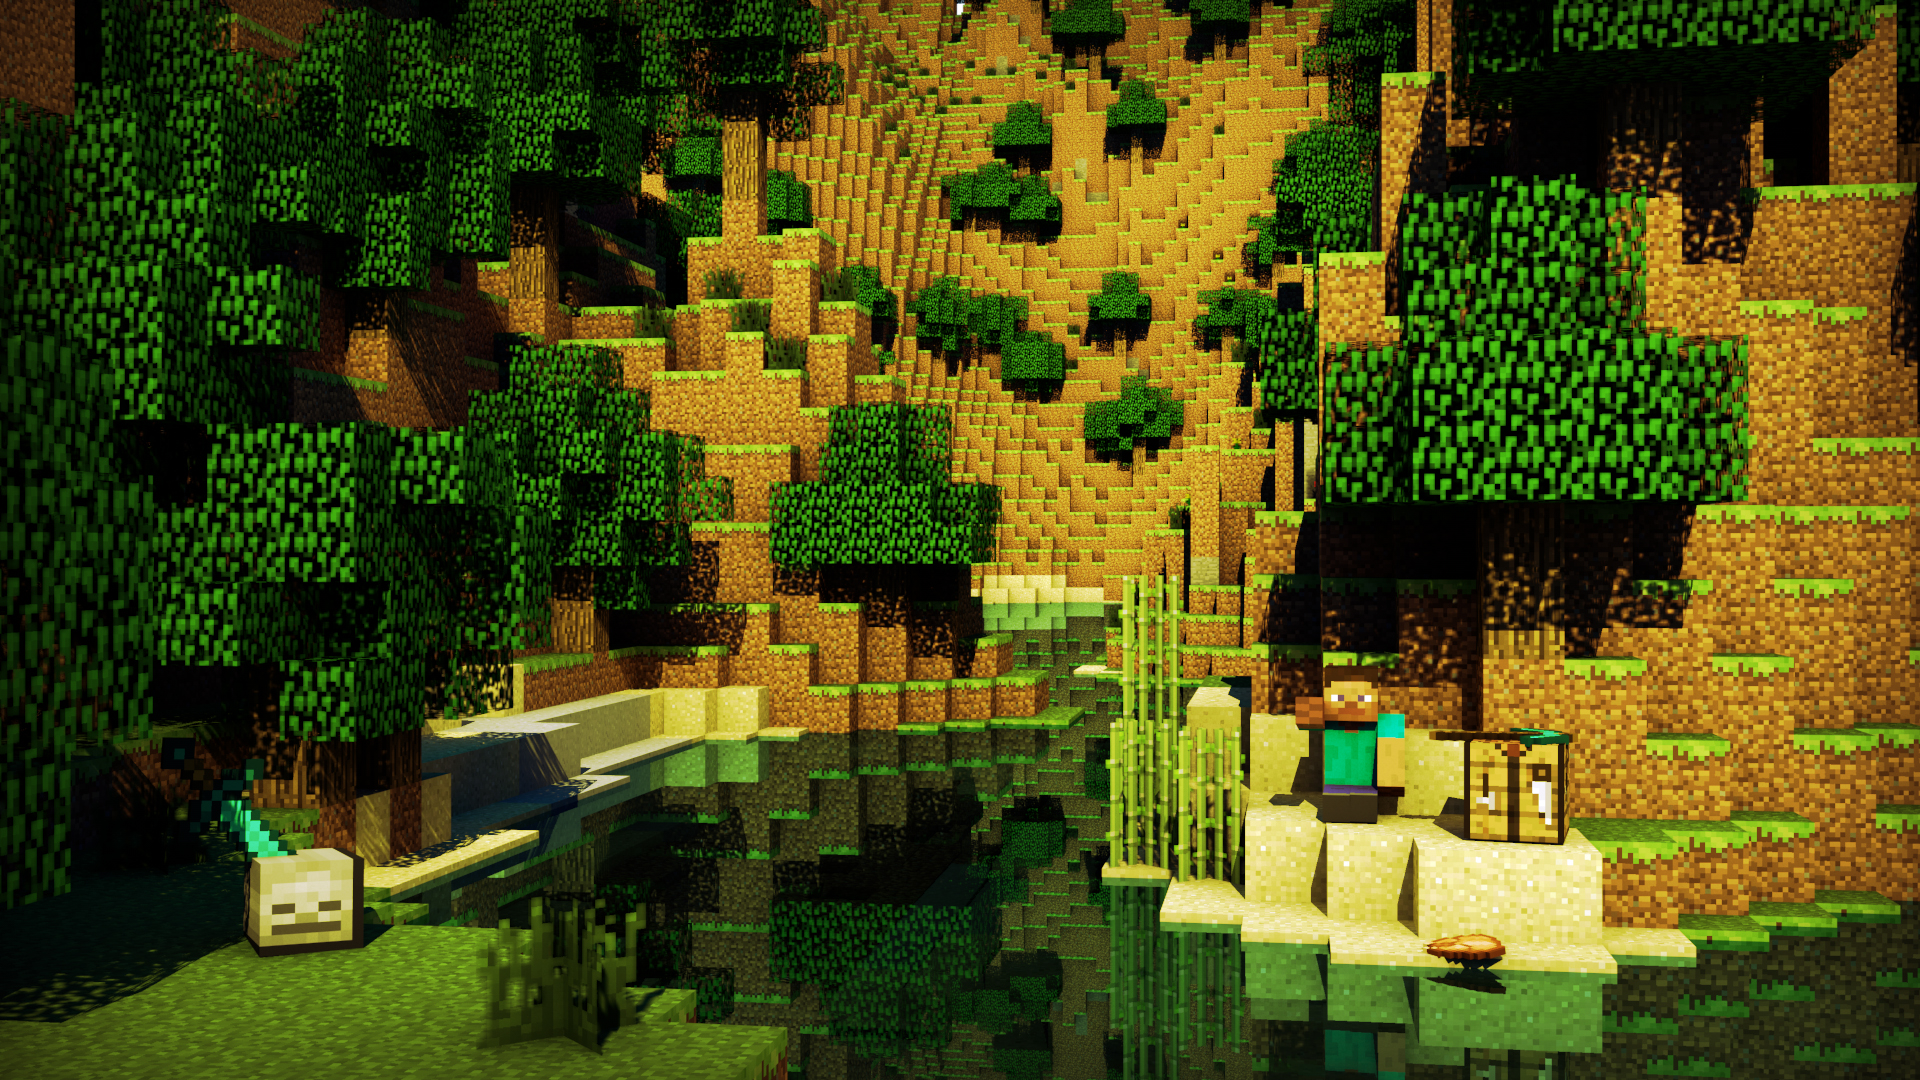 minecraft wallpaper 1920x1200 original - photo #26